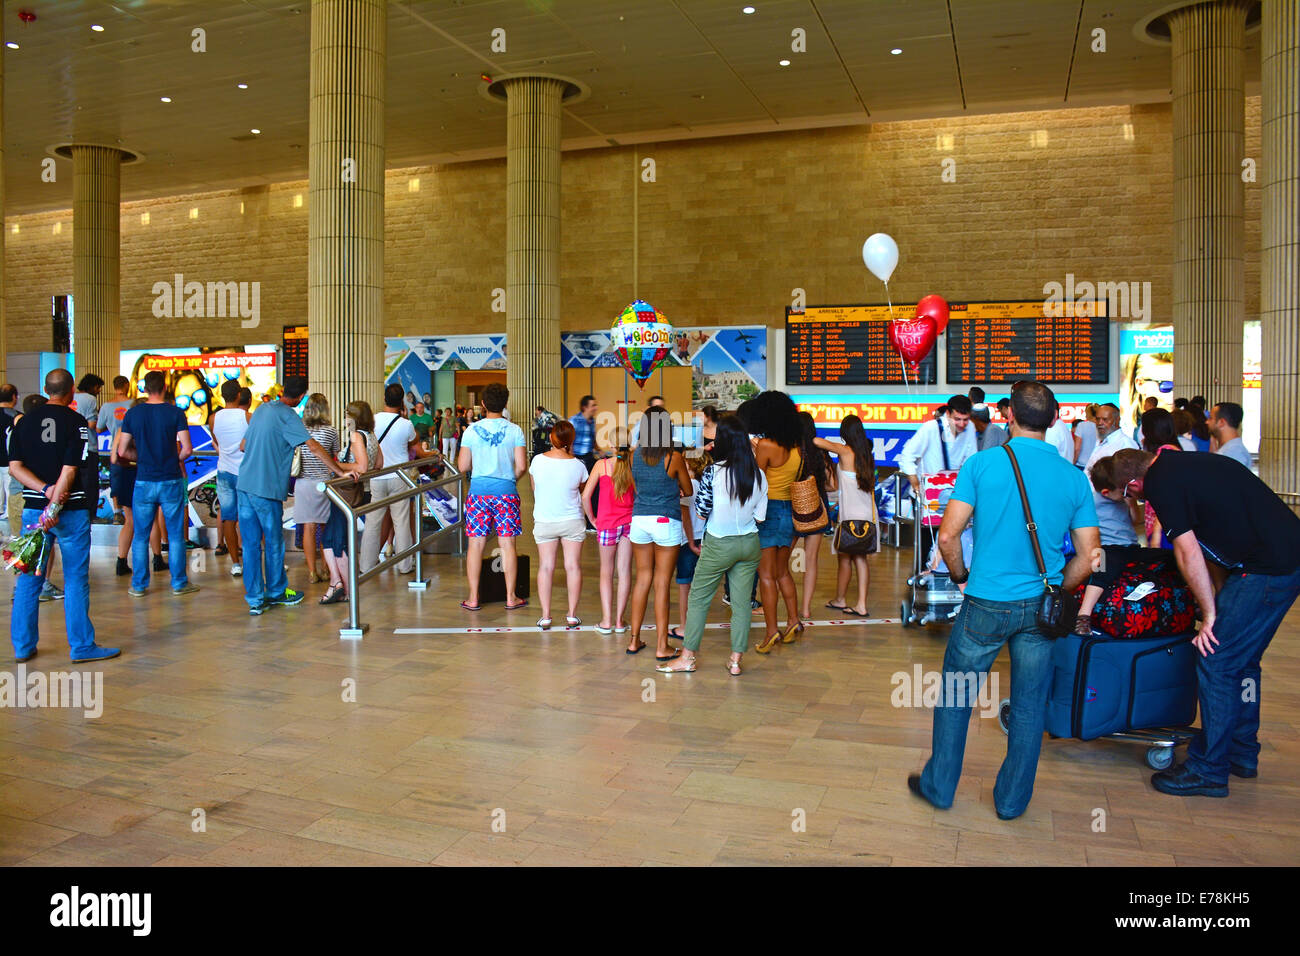 Arrivals reception hall, Ben Gurion airport, Israel - Stock Image